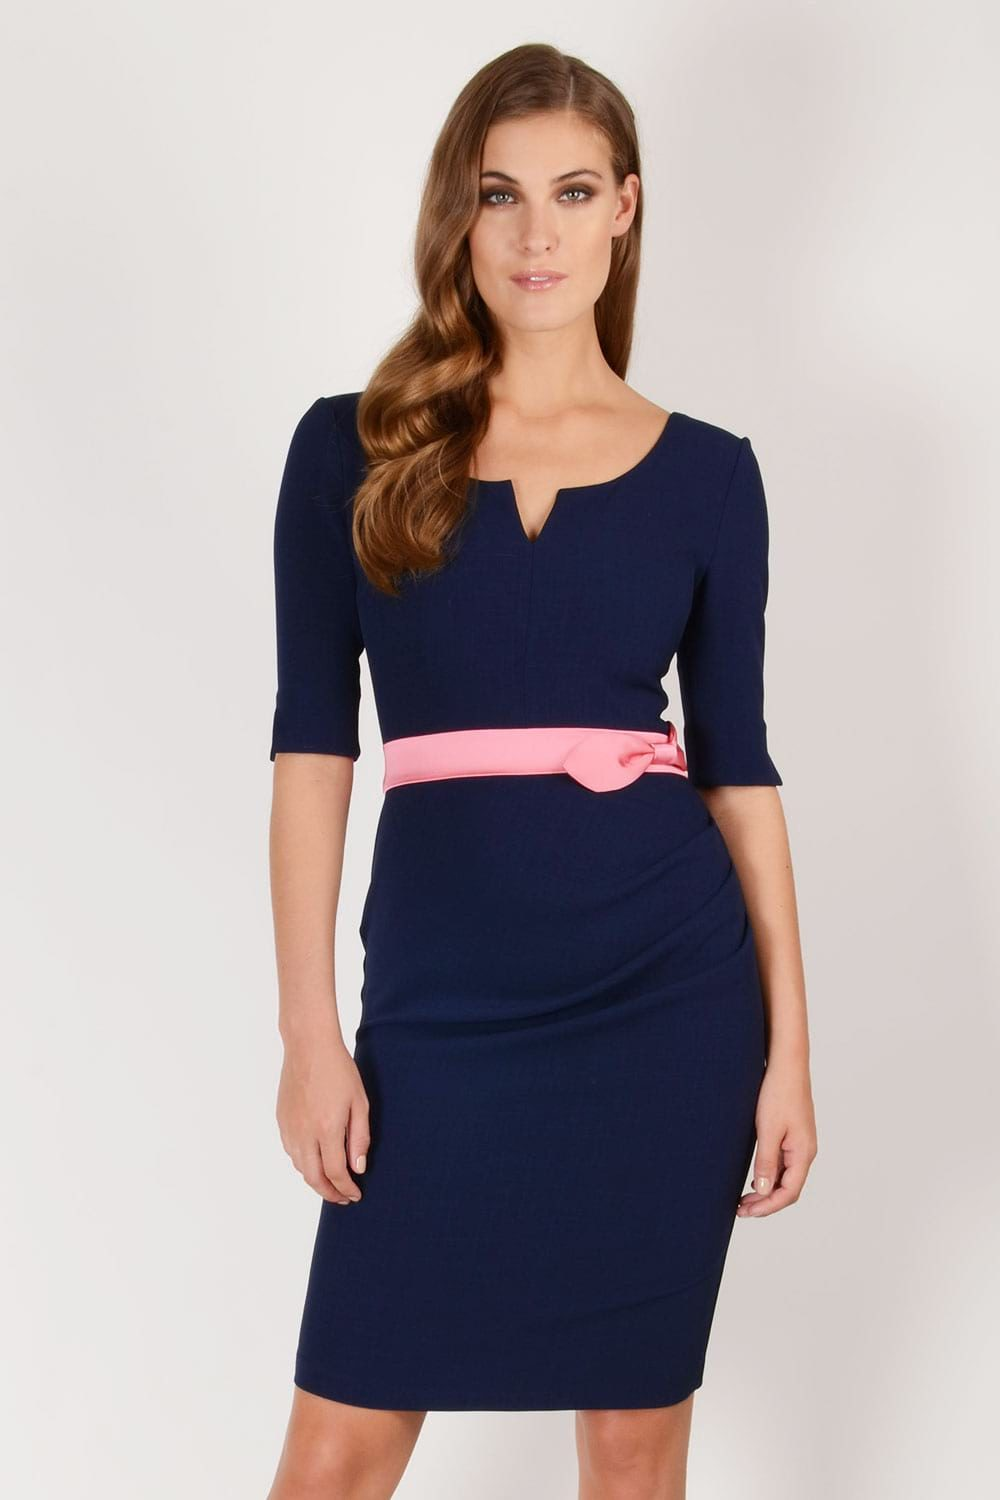 Hybrid Fashion 1218N Lilith Sleeved Pencil Dress